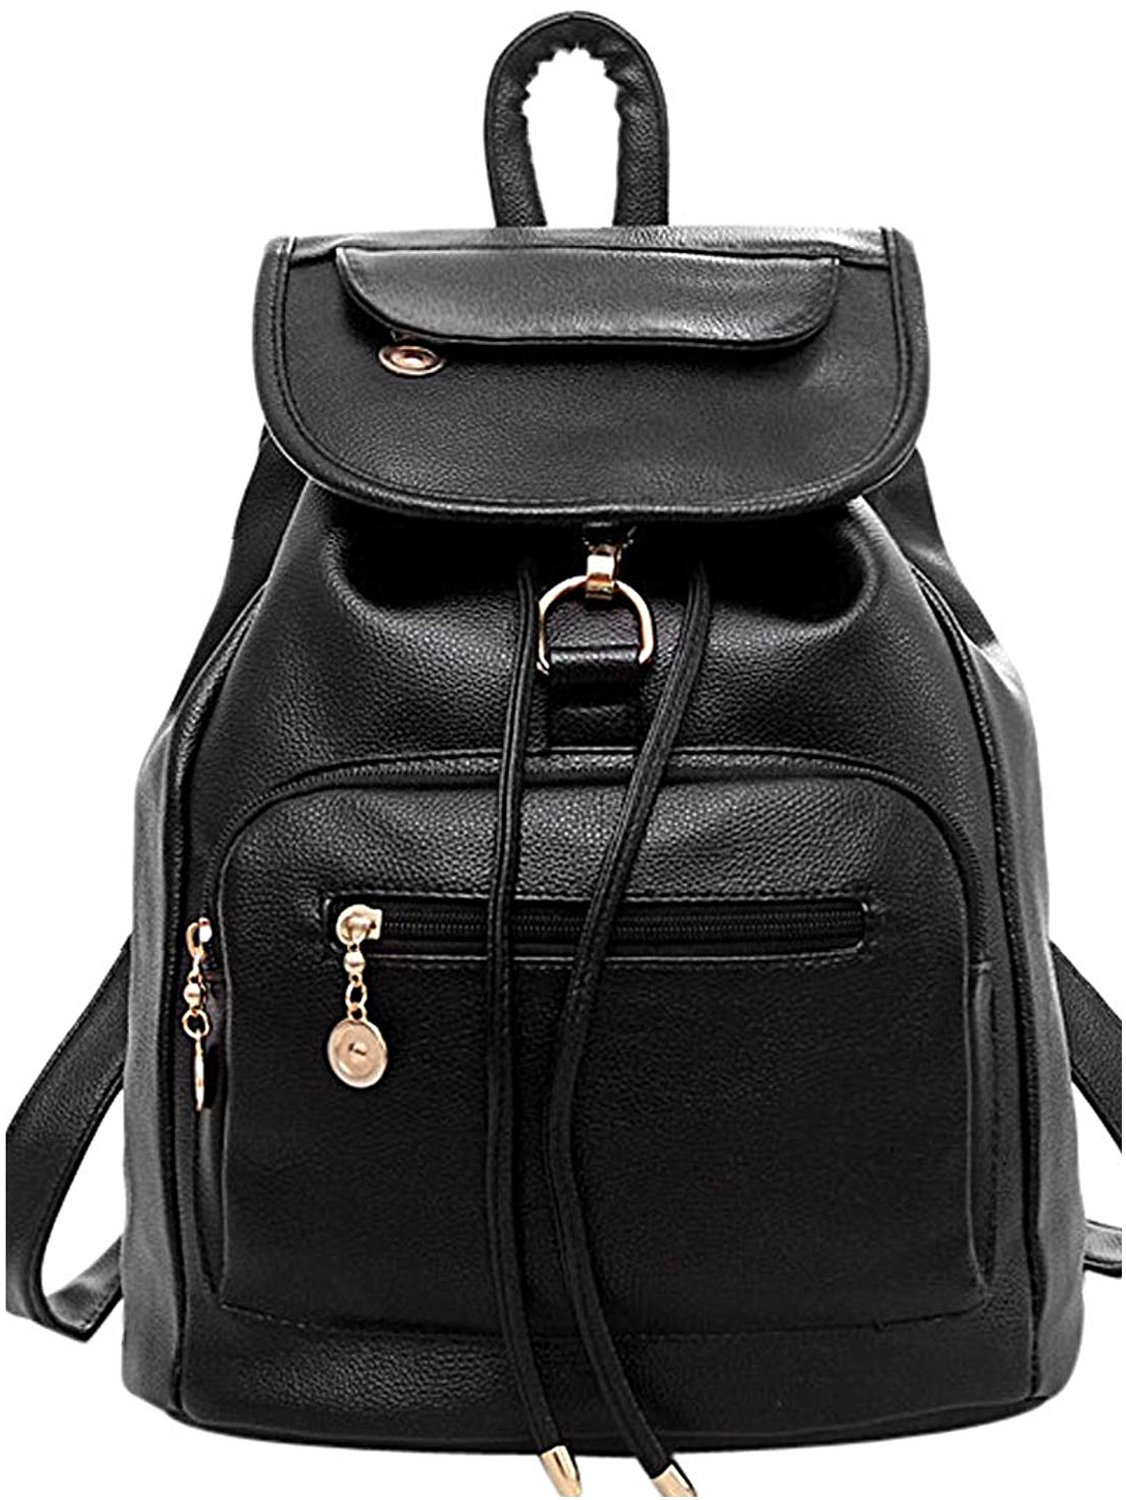 36790603e35a COOFIT Women Black Leather Backpack for Girls Schoolbag Casual Daypack